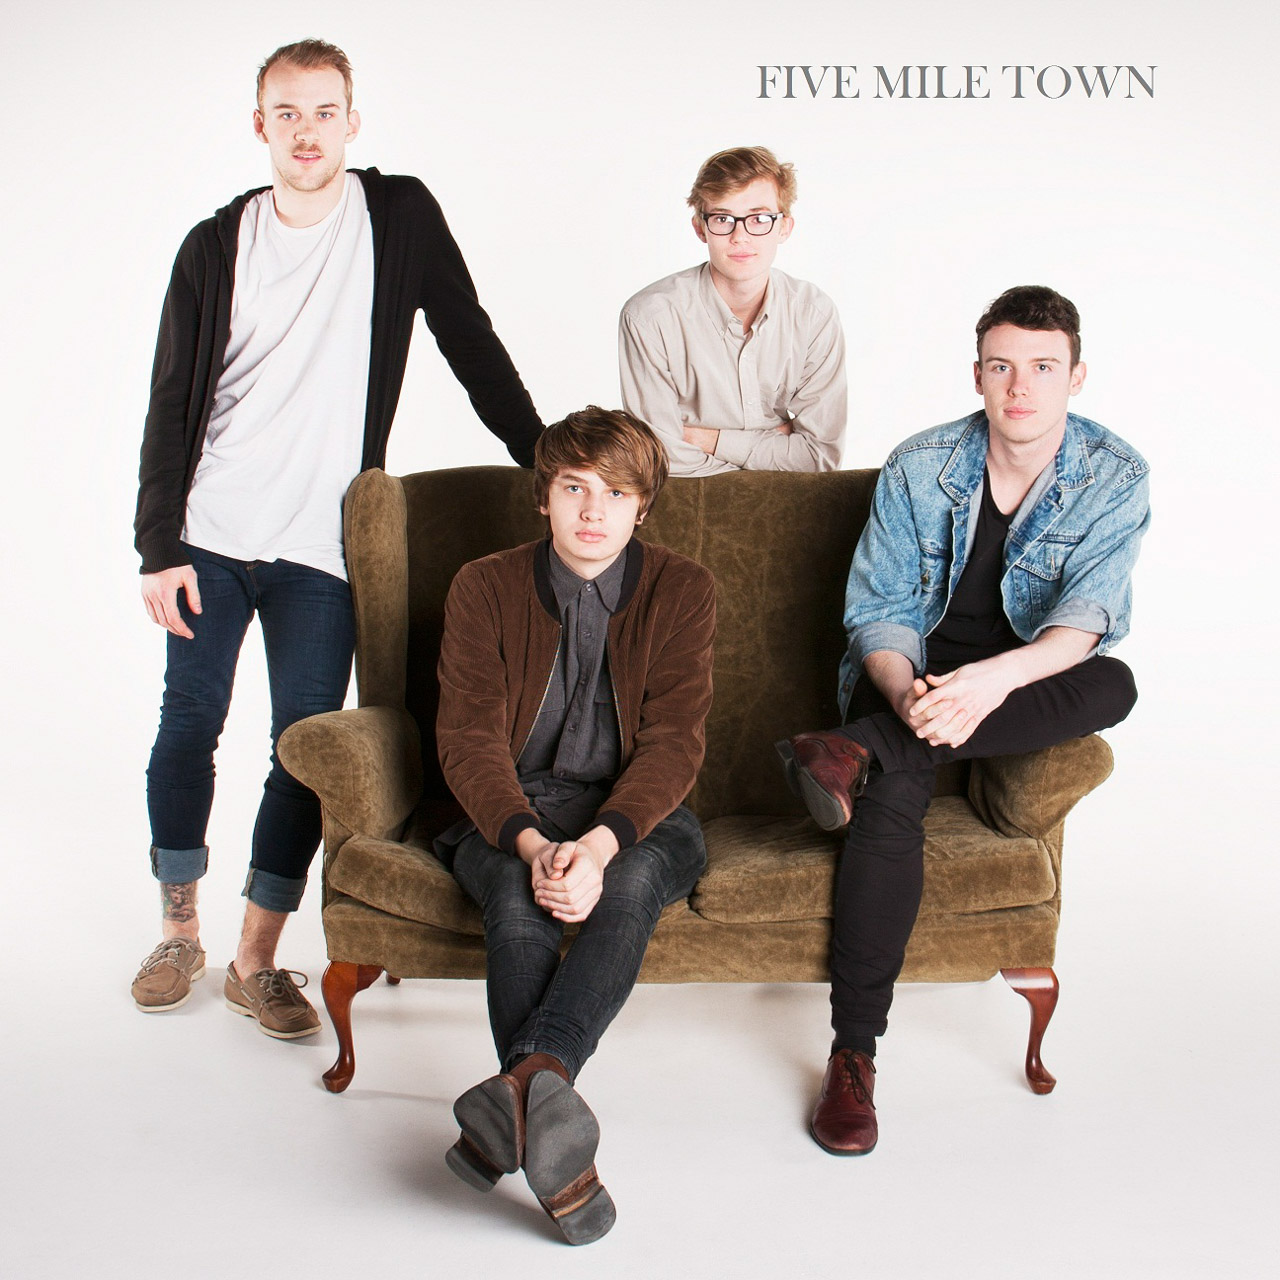 A picture of Five Mile Town